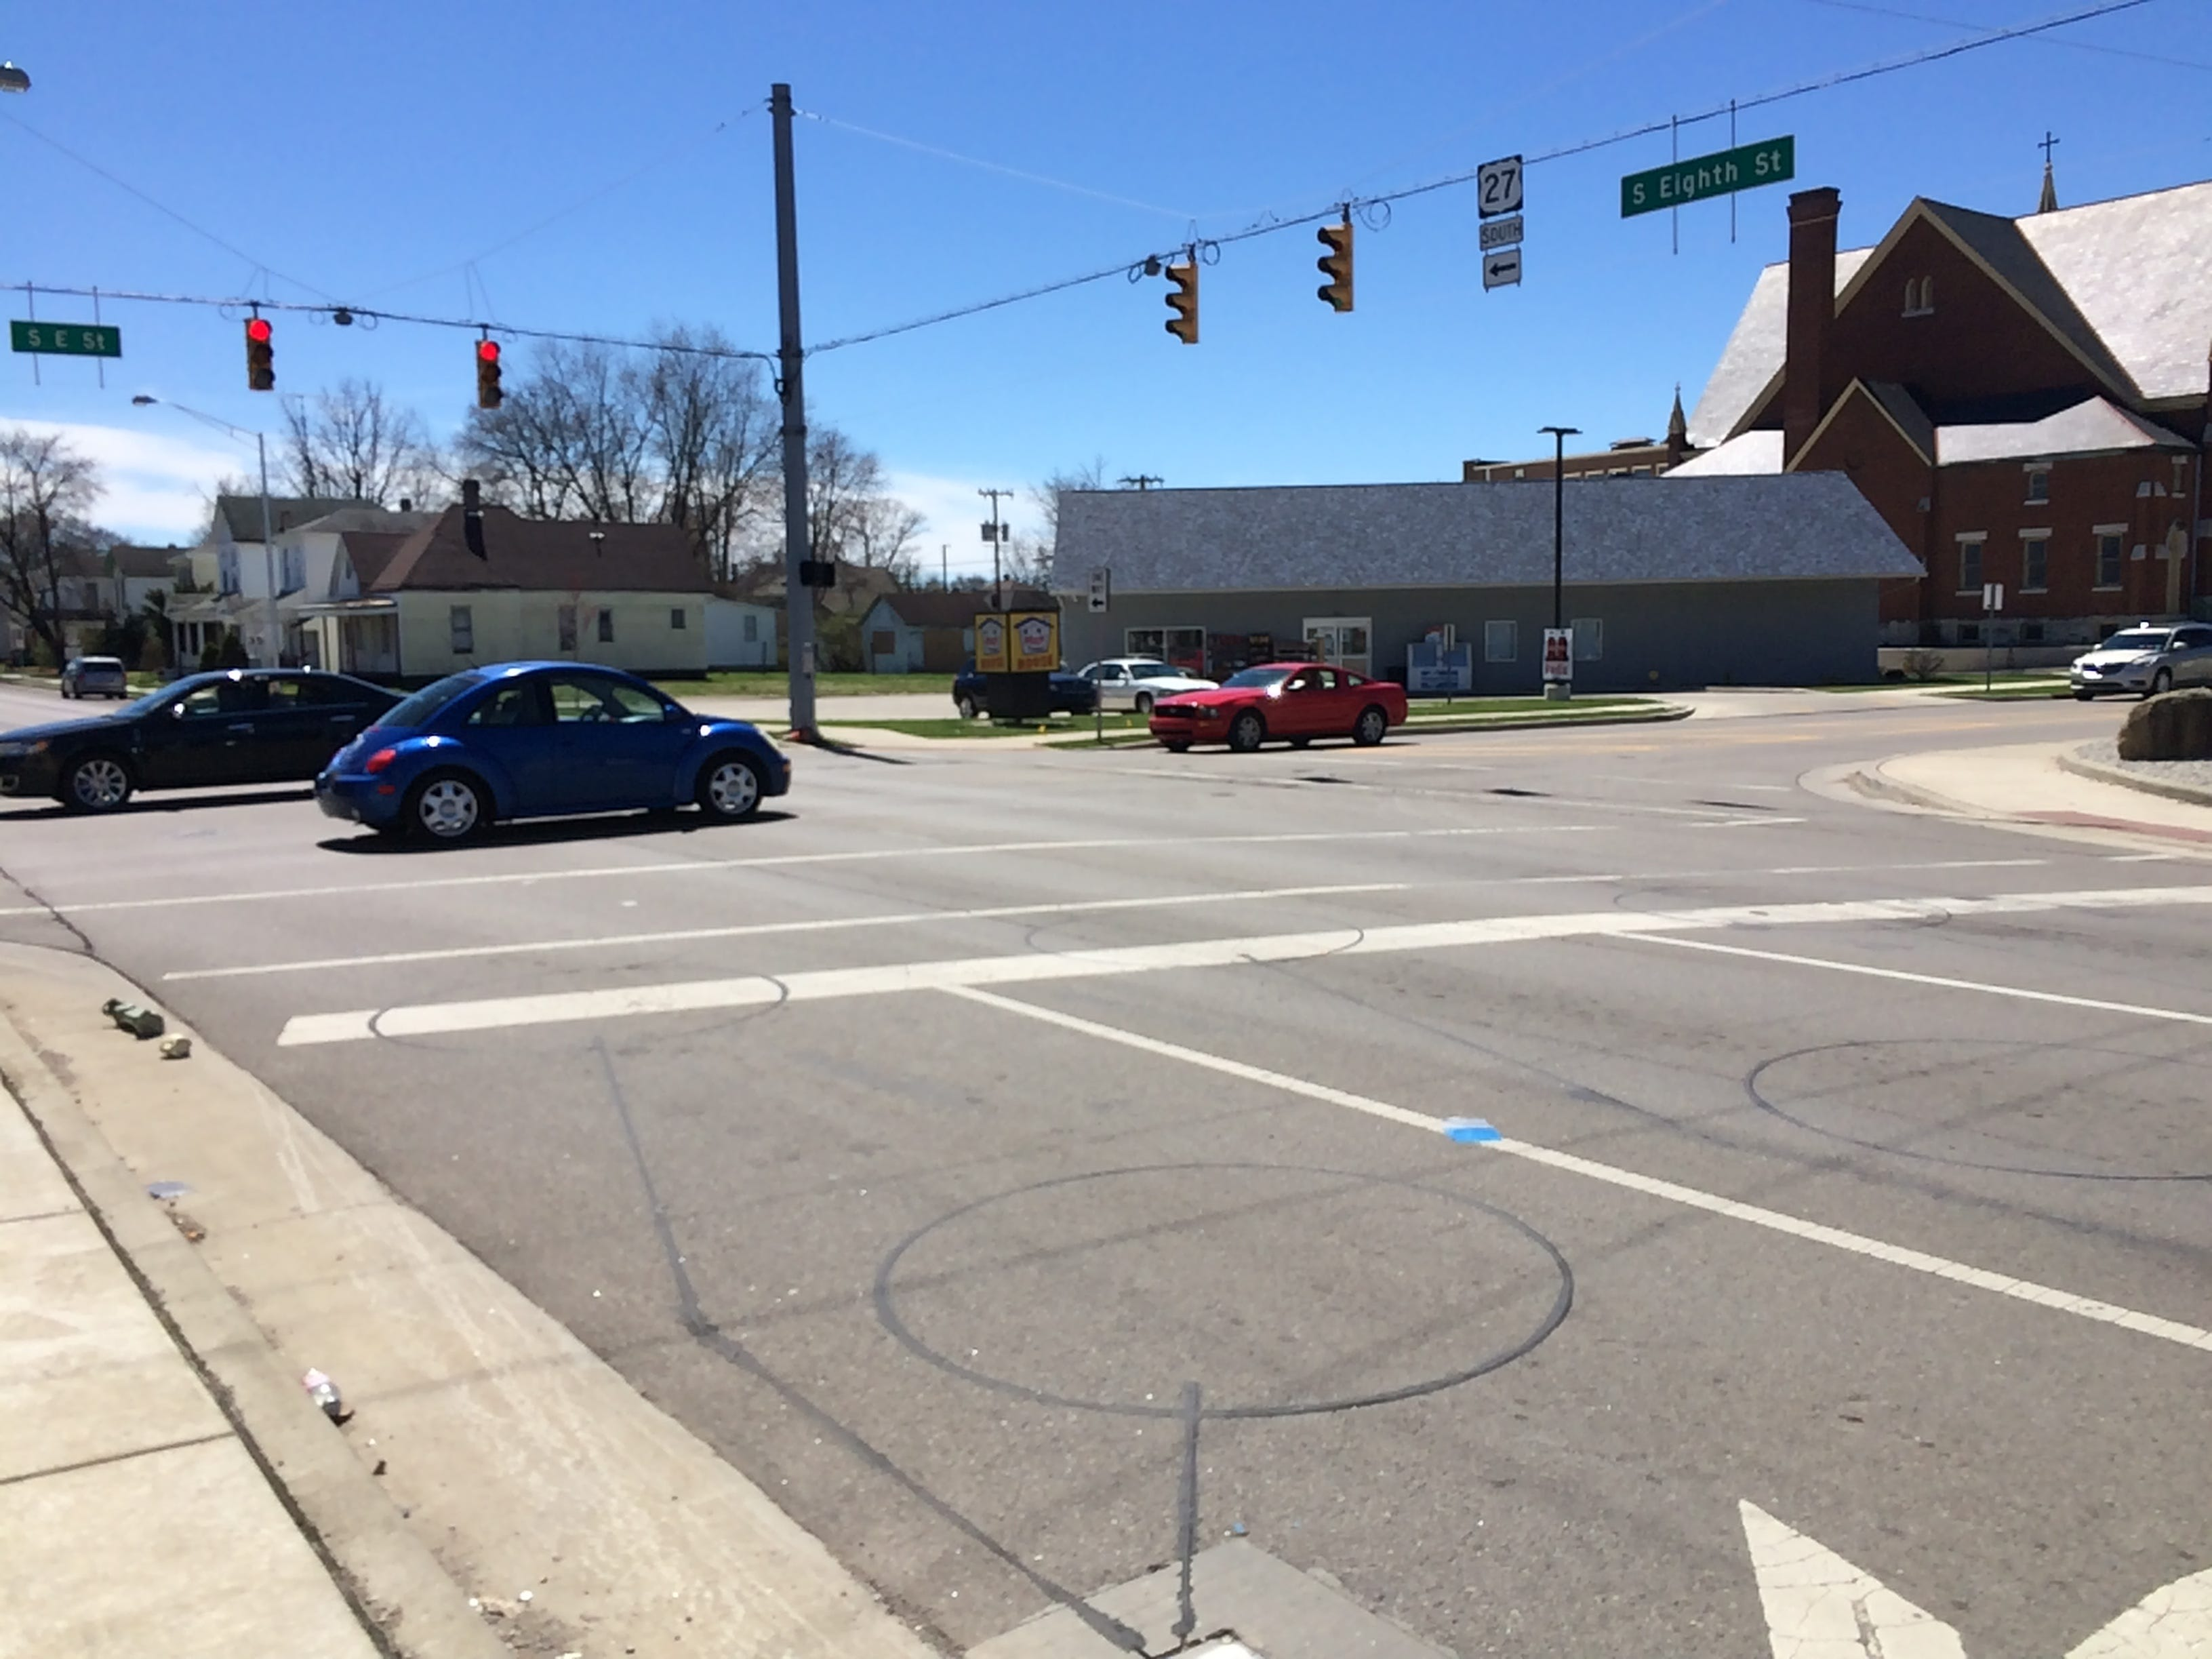 Richmond Police Department reported 12 accidents during 2018 at the intersection of South Eighth and South E streets.